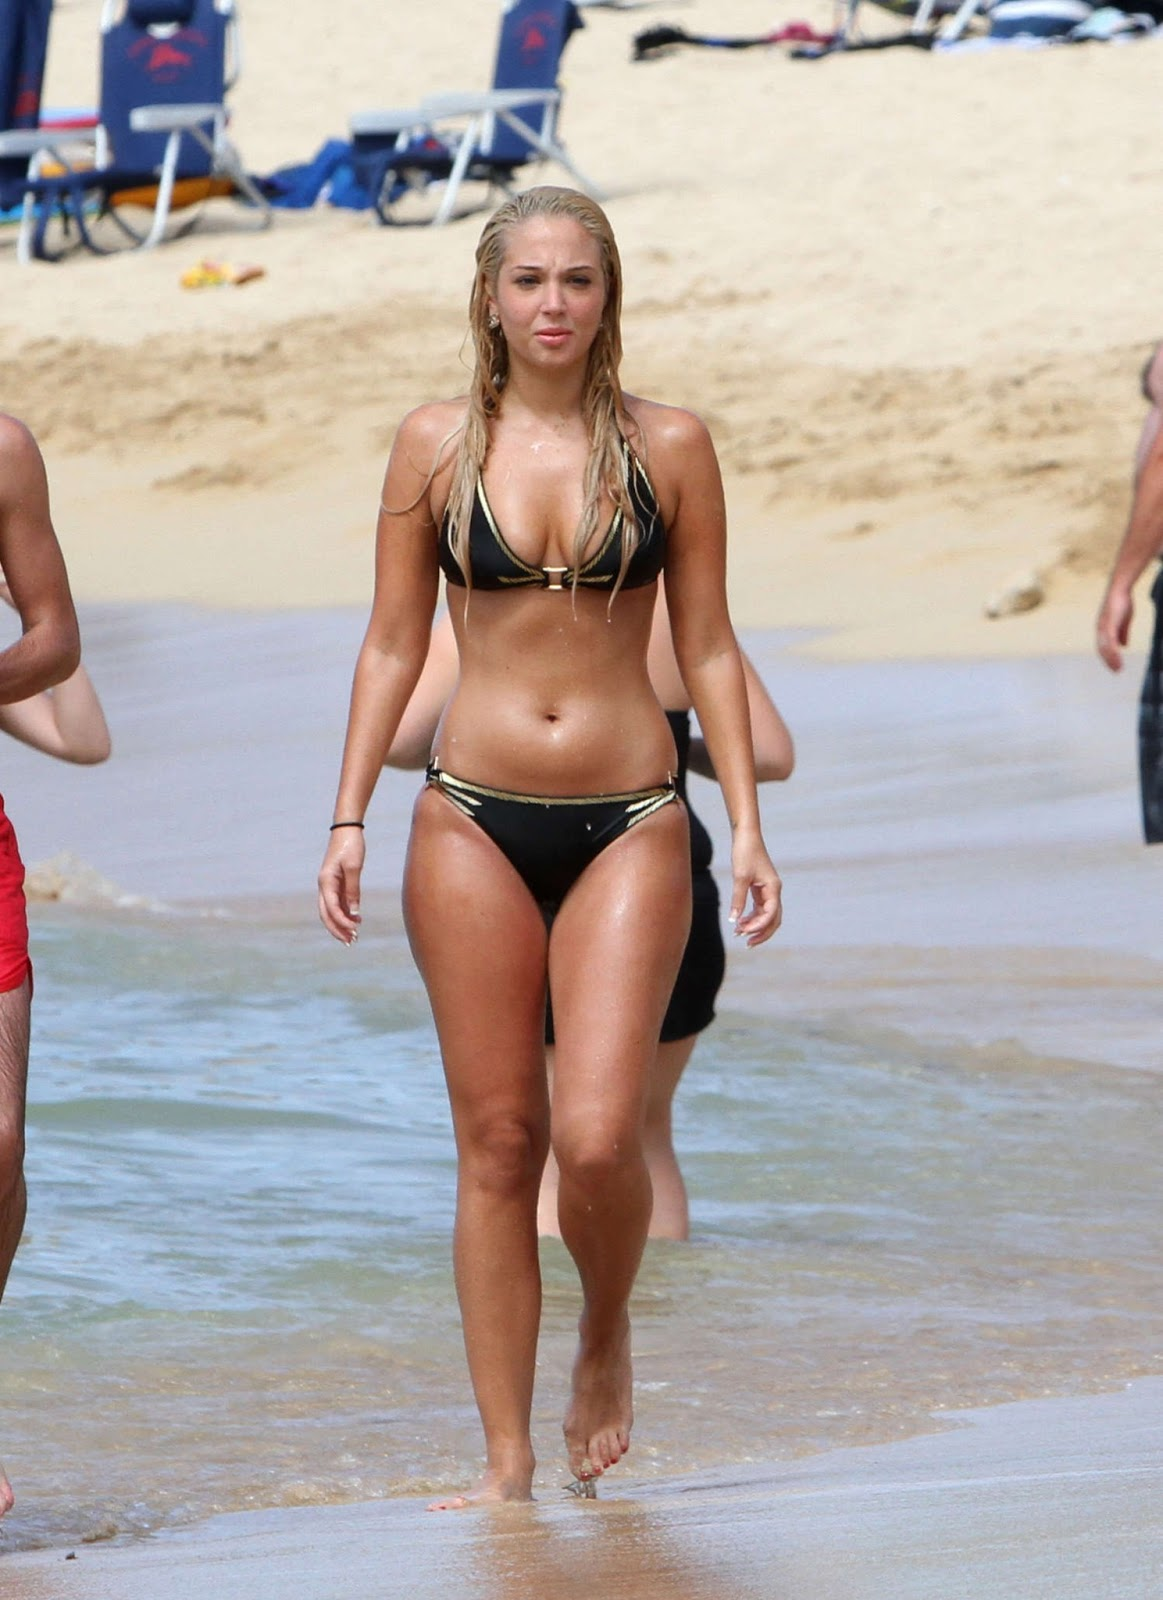 http://1.bp.blogspot.com/-1gYe6ZKH-RM/URDo3HIMM7I/AAAAAAABVmA/Ng2qynGgXCU/s1600/tulisa-contostavlos-in-black-bikini-on-honolulu-beach-in-hawaii-20.jpg